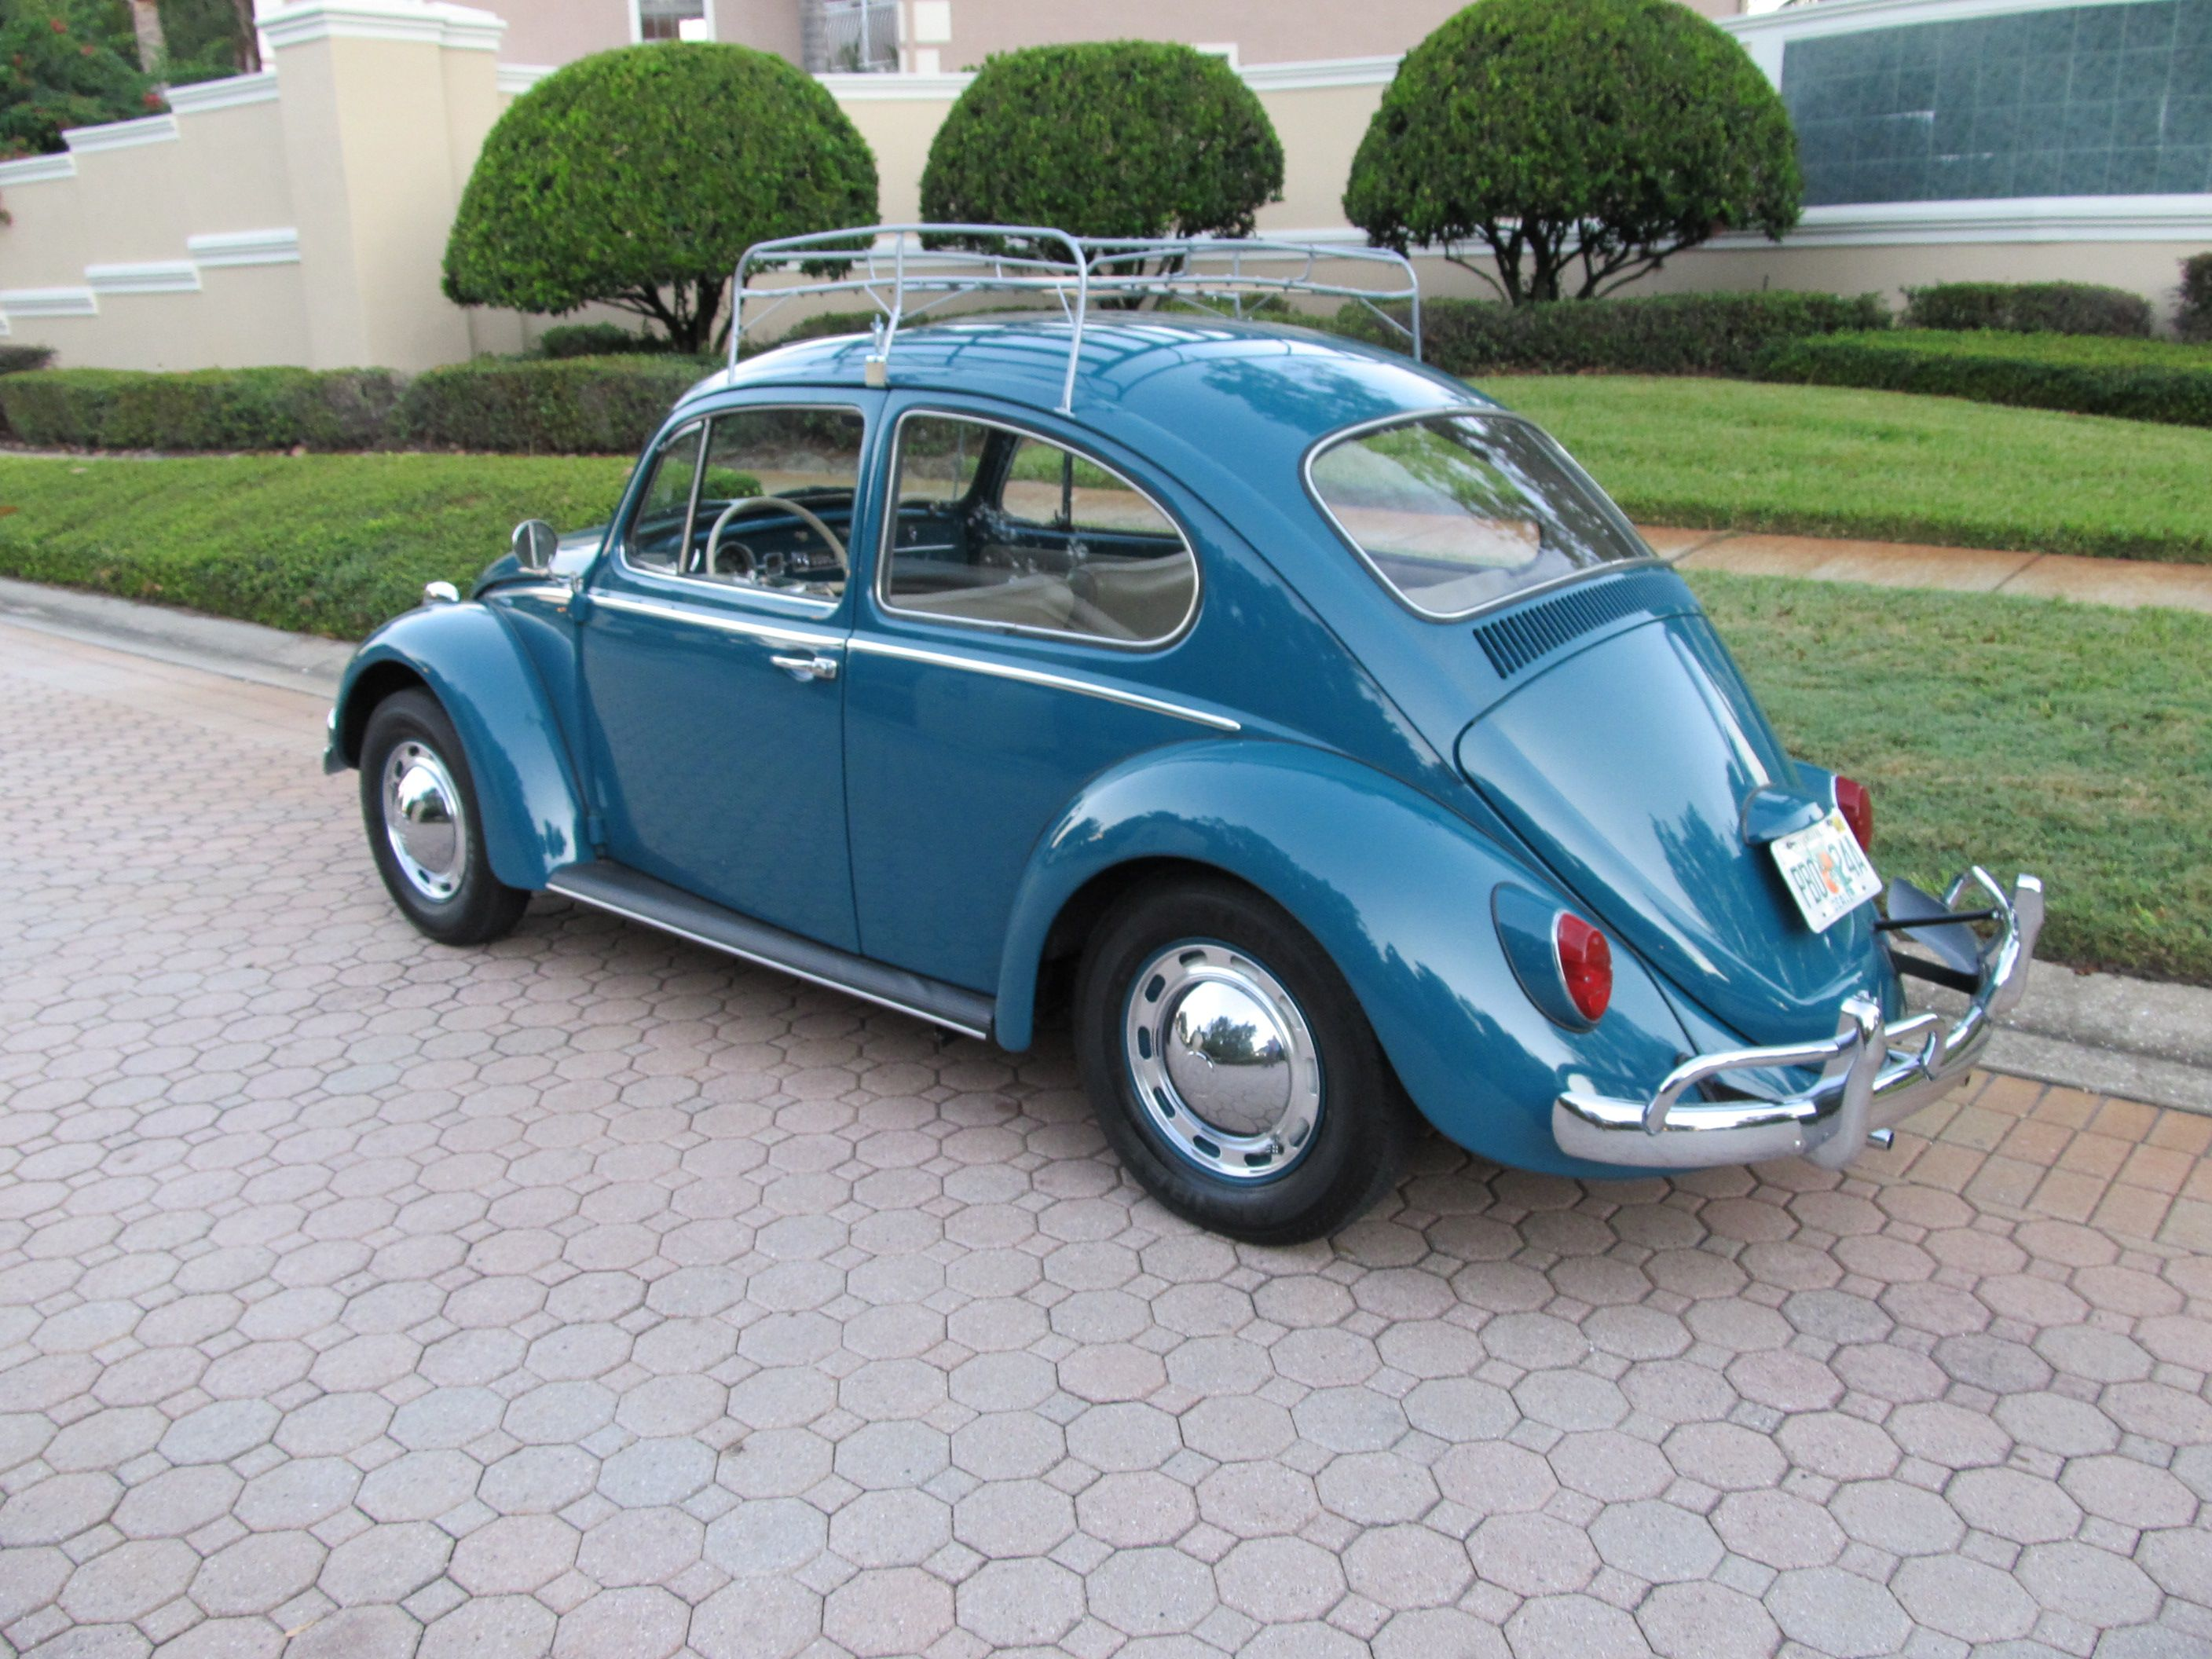 Travel Buggy With Sunroof 1965 Volkswagen Beetle A Nicely Restored Sunroof Bug